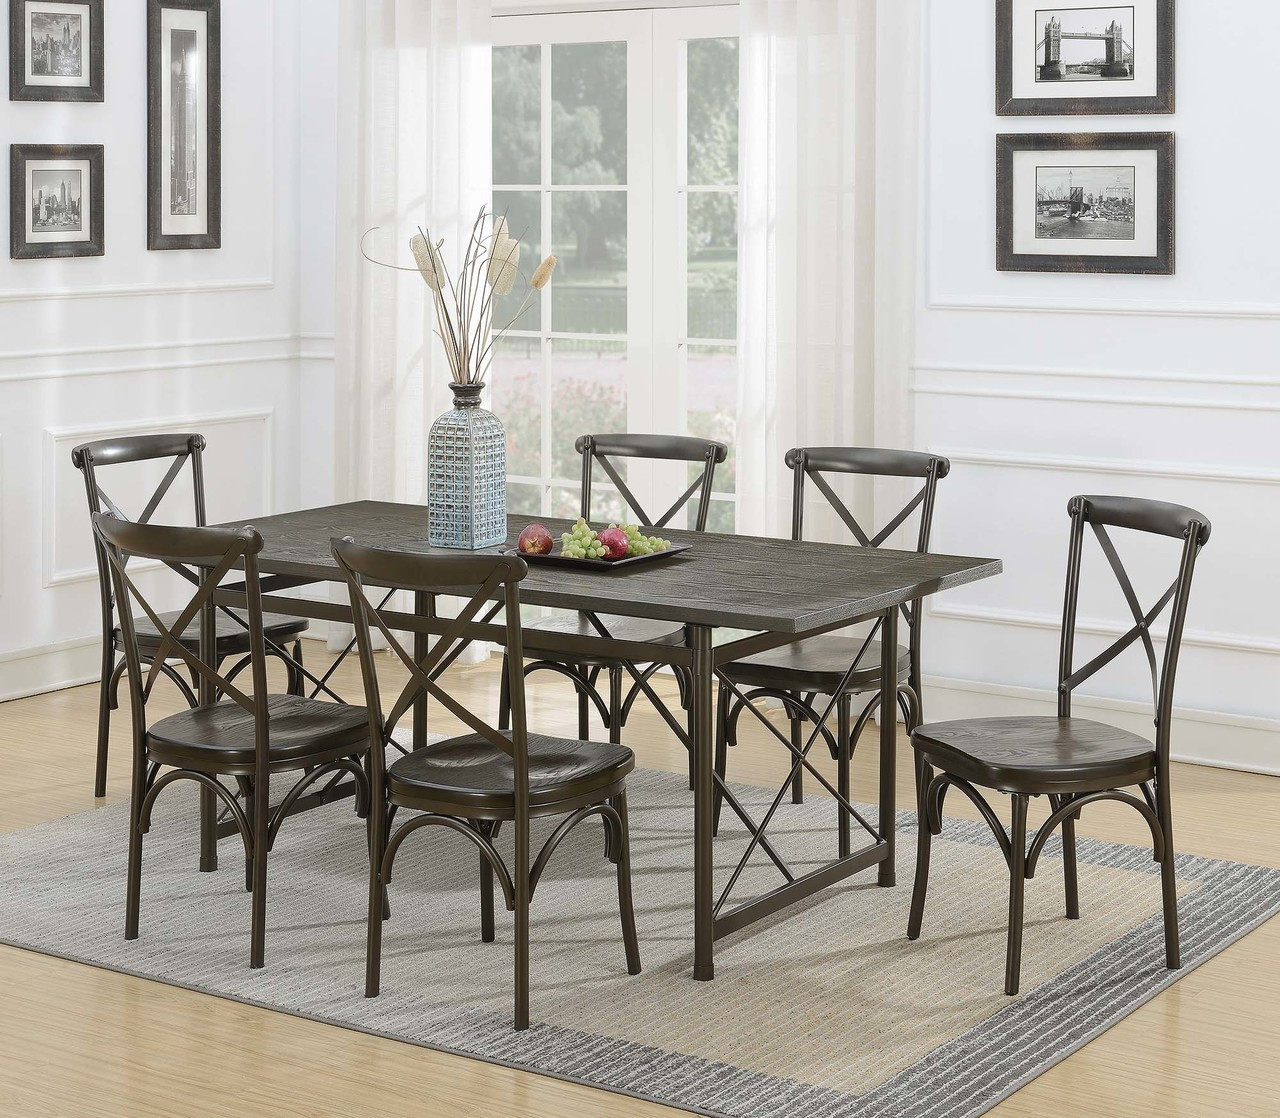 The Hawthorne Industrial Chic Brown Dining Table Available At Cupp S Furniture Proudly Serving Elkins Wv